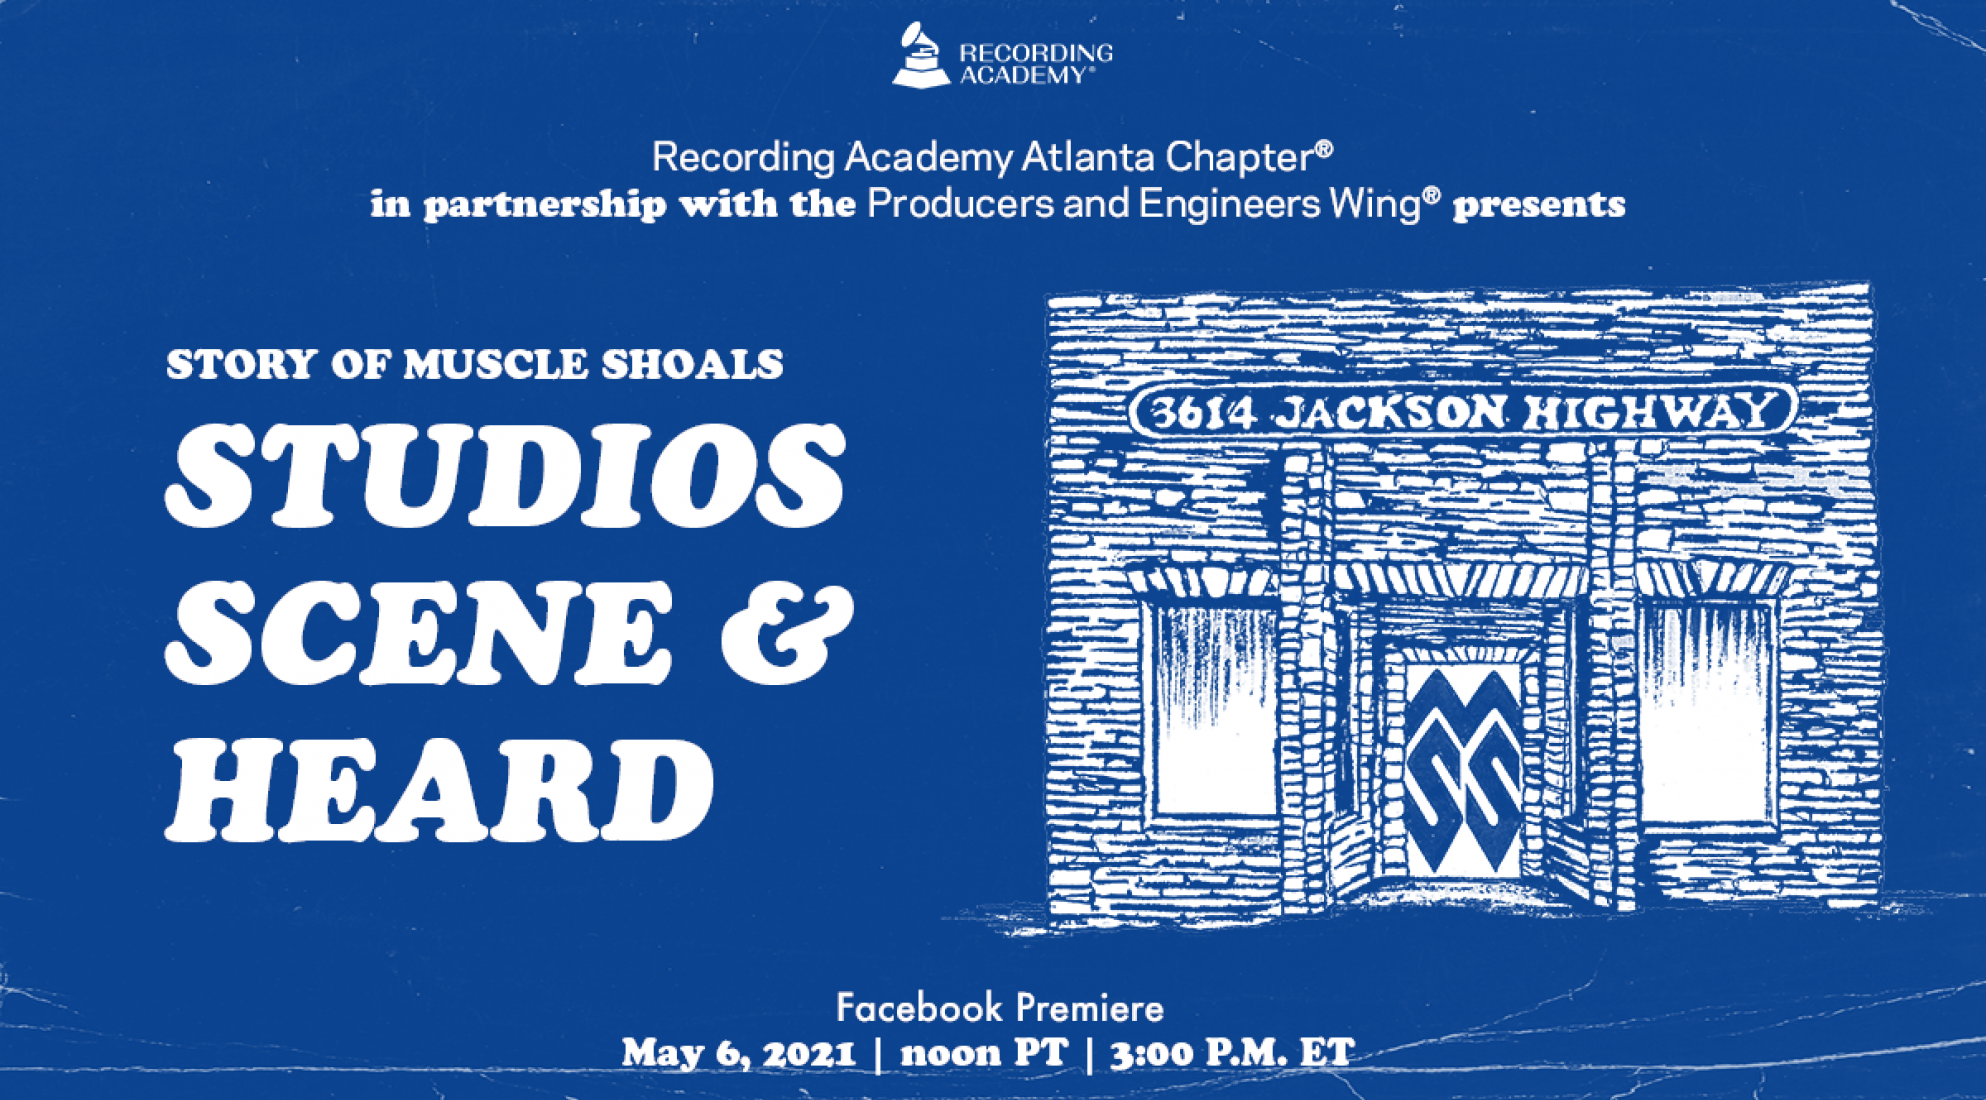 Artwork for Story of Muscle Shoals Studios Scene and Heard event